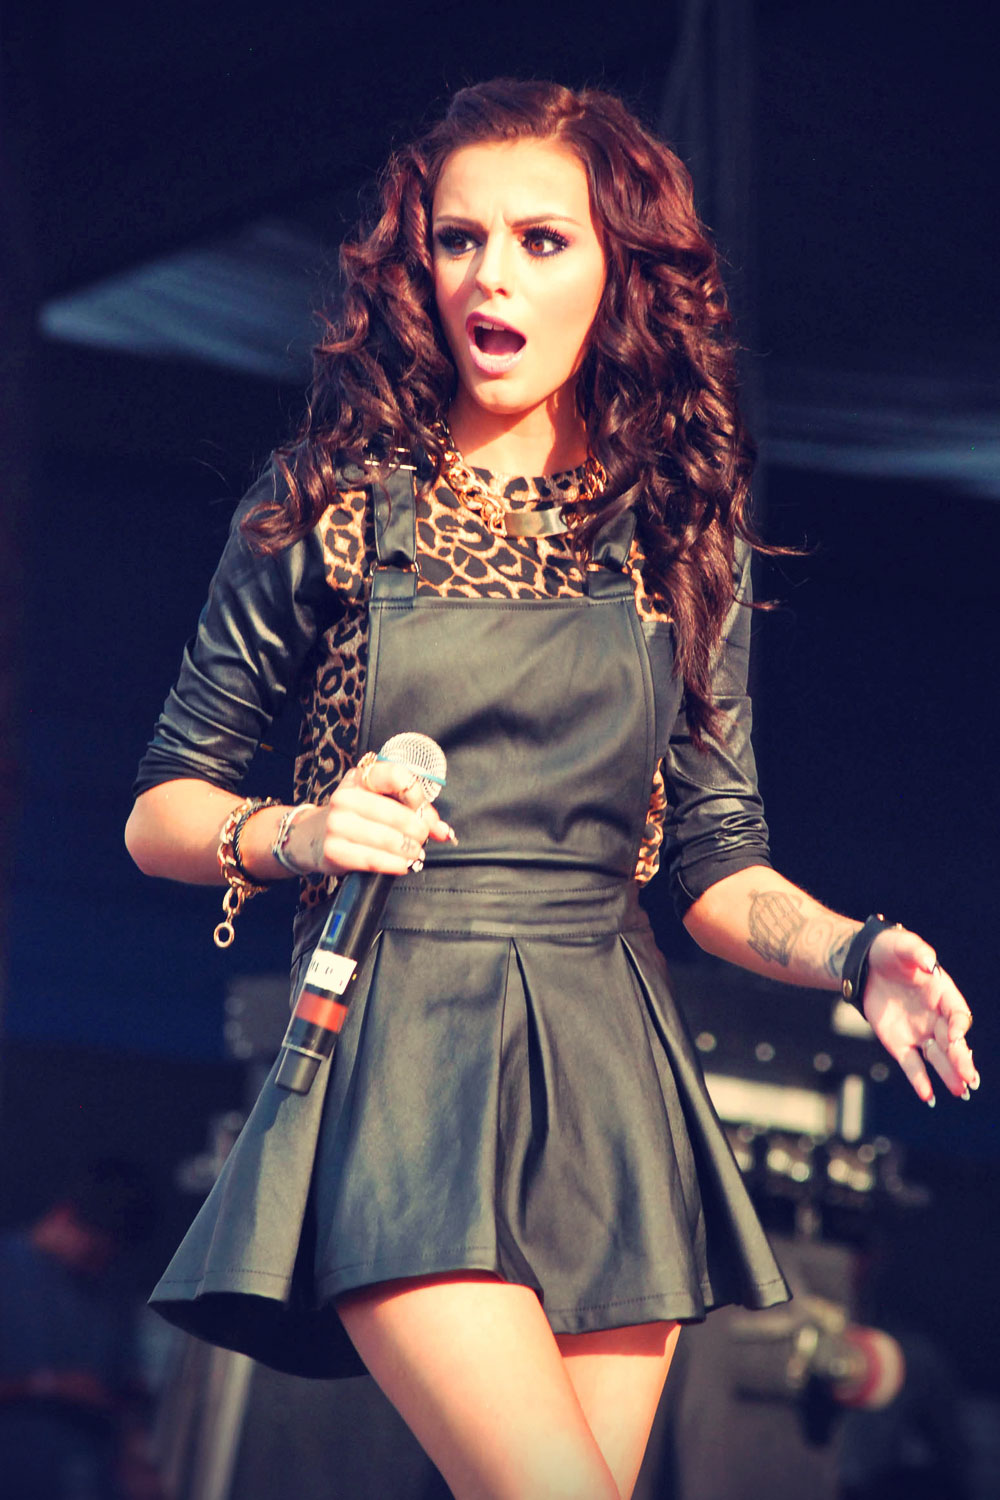 Cher Lloyd attends B96 Pepsi Summerbash